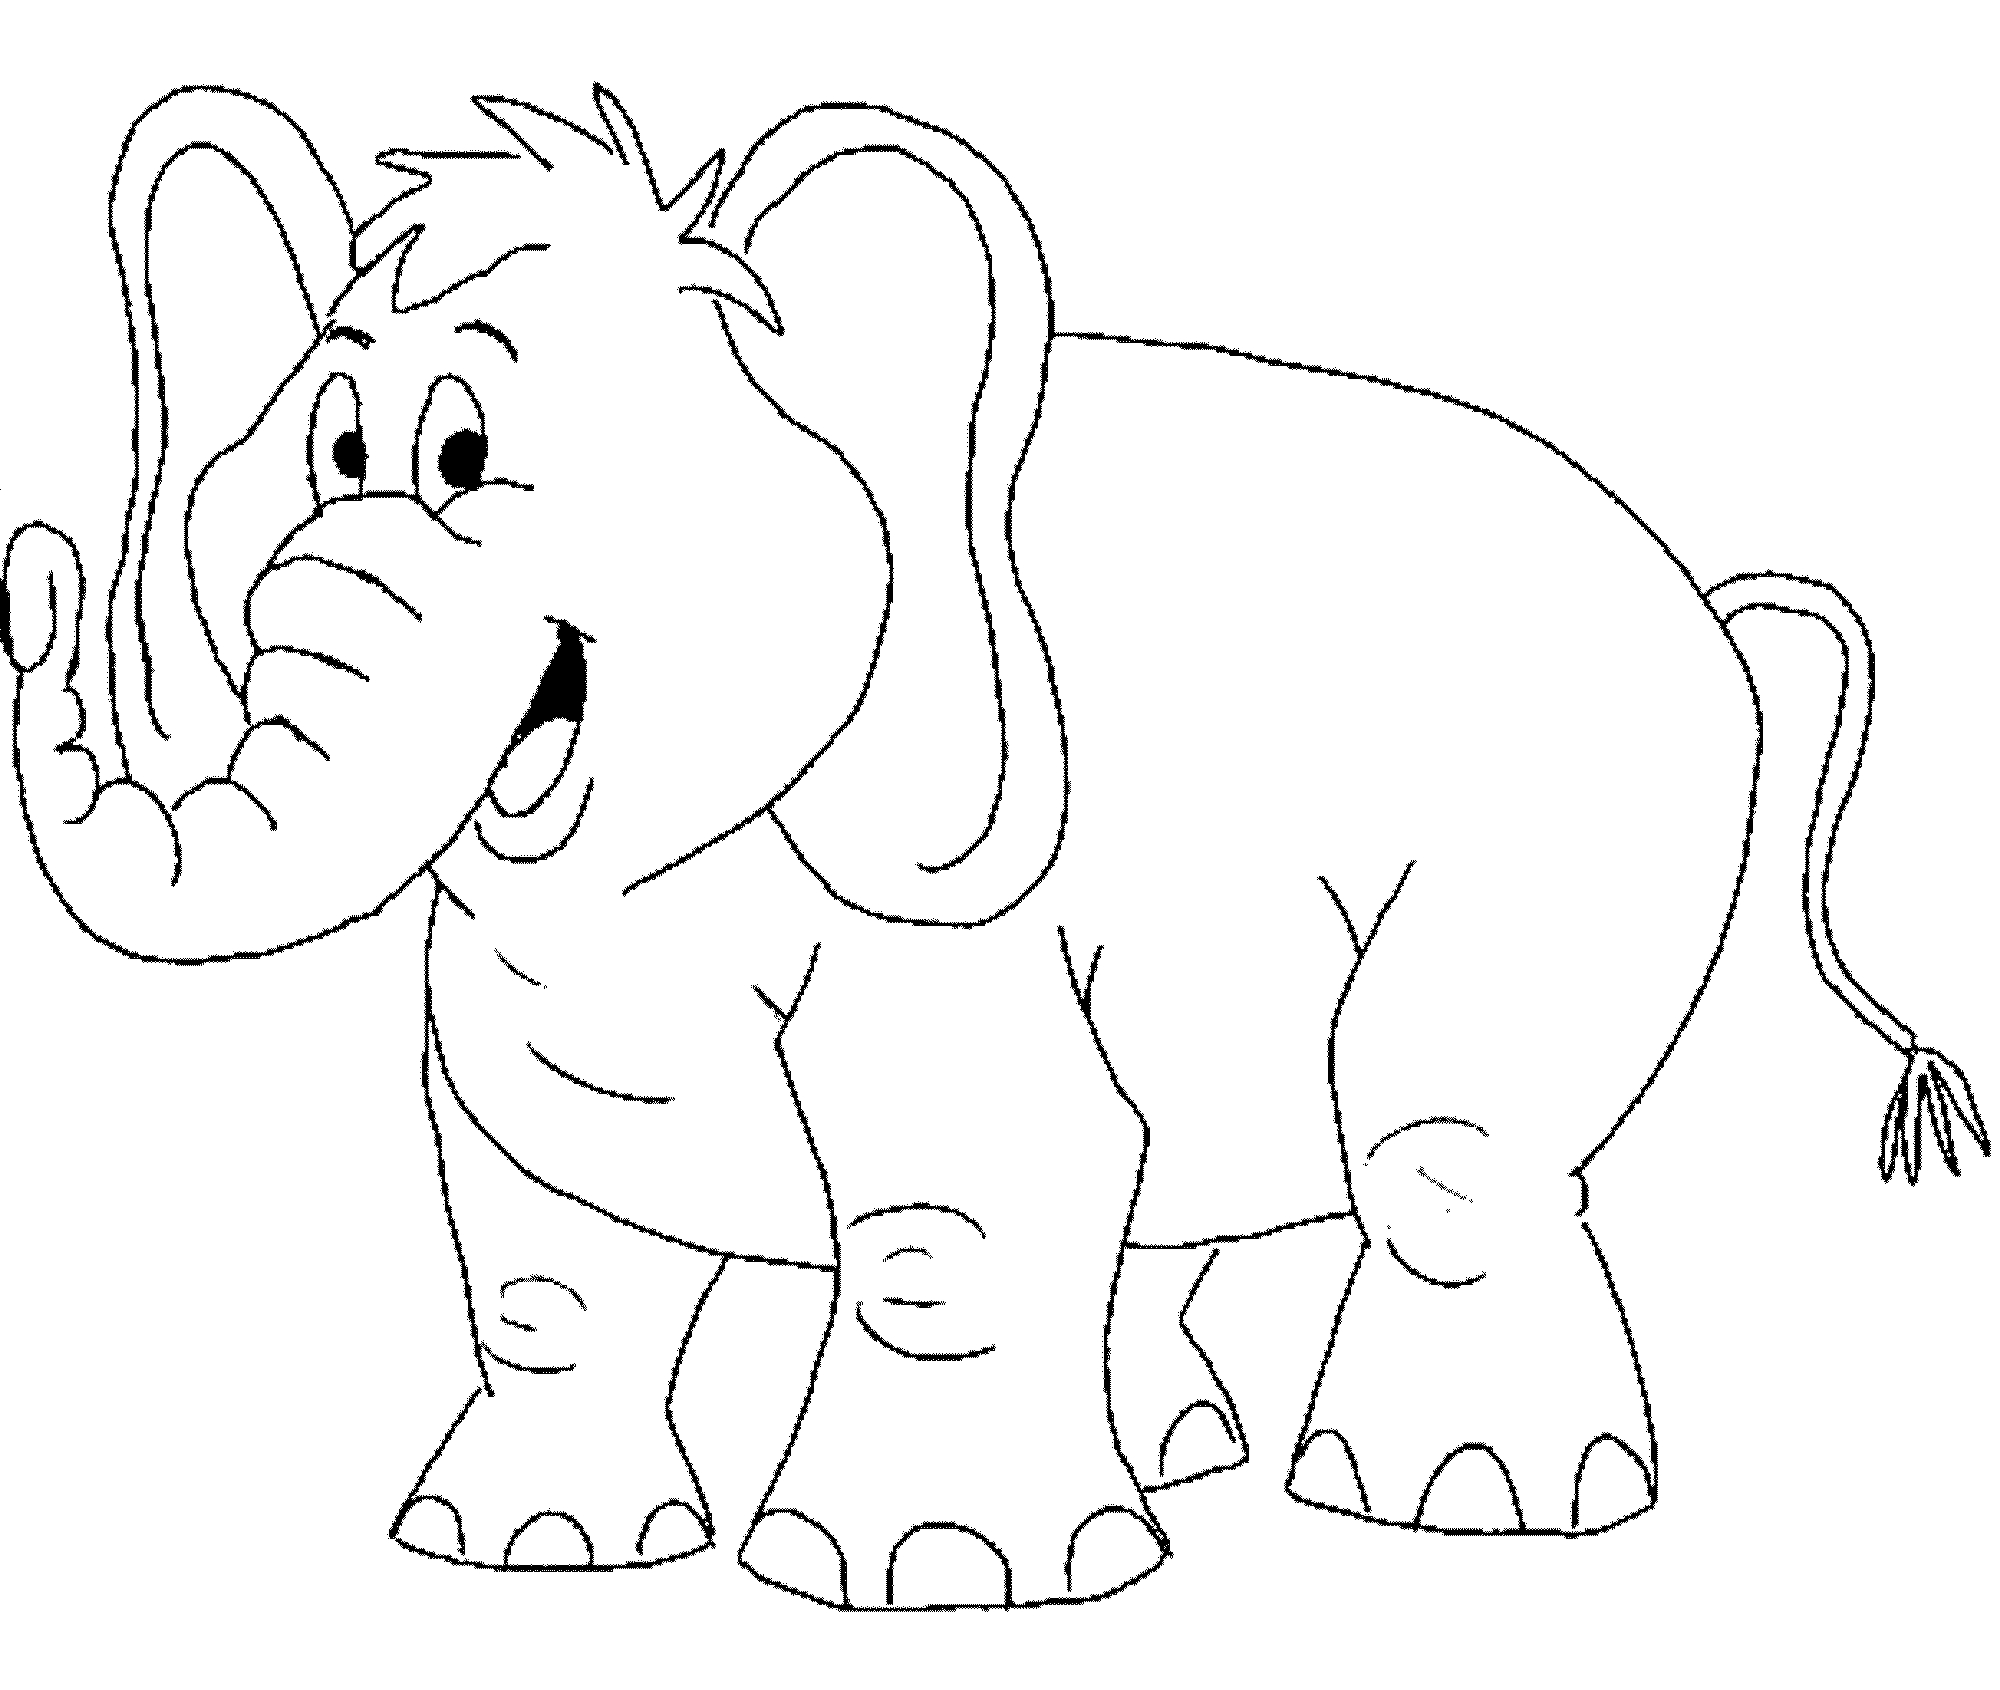 Pdf Coloring Pages For Kids Coloring Coloring Pages Preschool For Preschoolers Pdf Numbers In